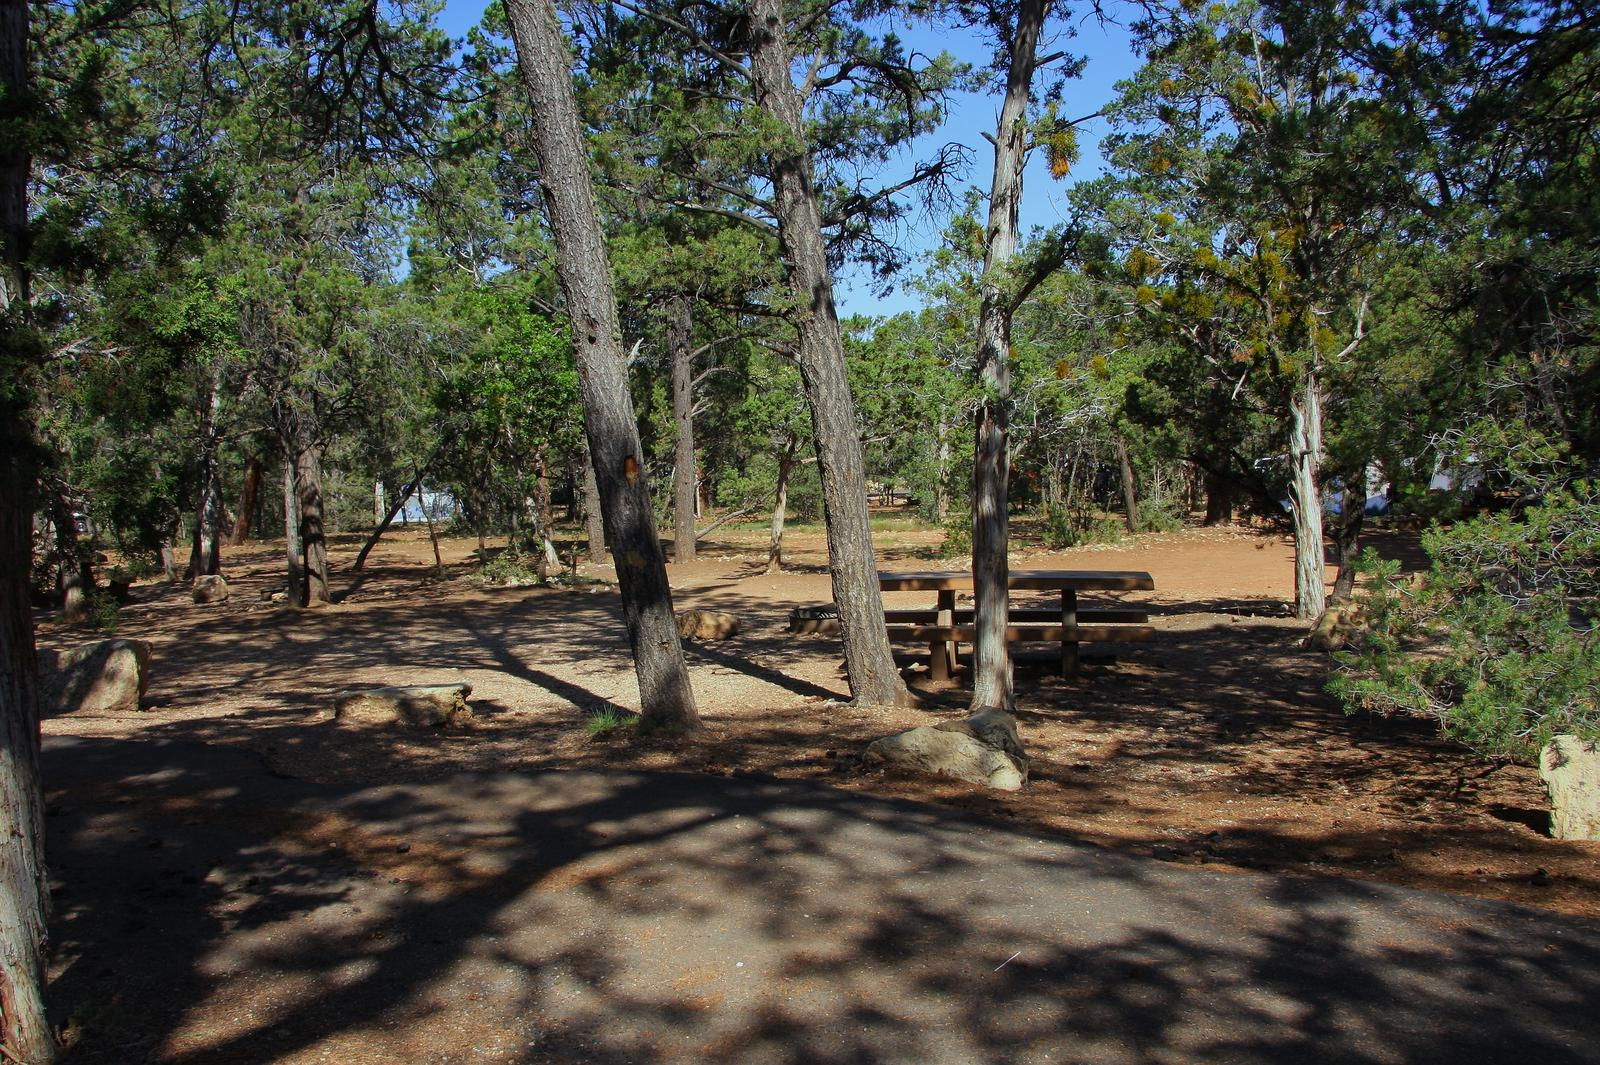 Picnic table, fire pit, and park spot, Mather CampgroundPicnic table, fire pit, and park spot for Oak Loop 235, Mather Campground